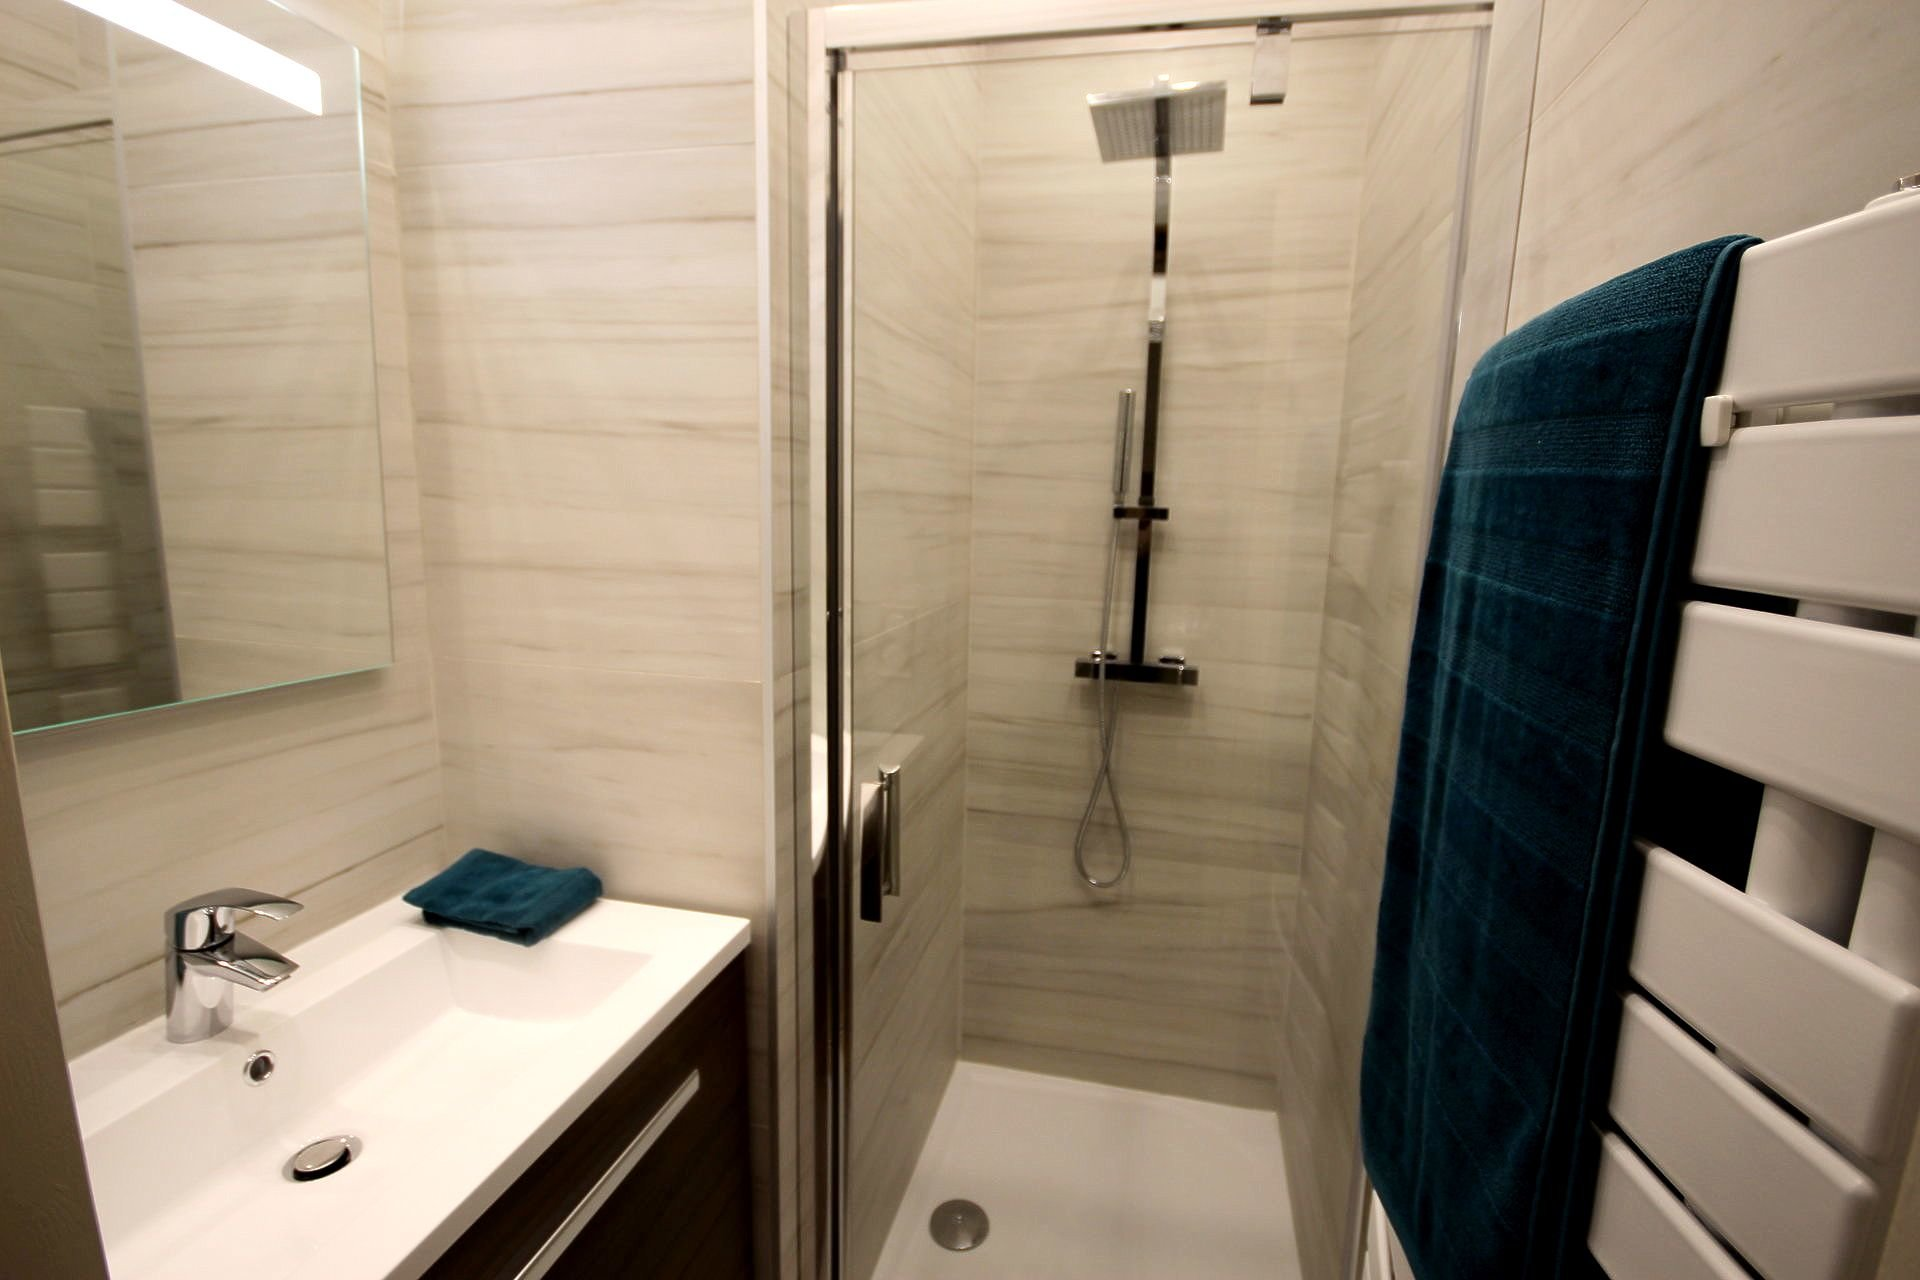 SALE 2 ROOMS RENOVATED IN QUIET NEAR CITY CENTER